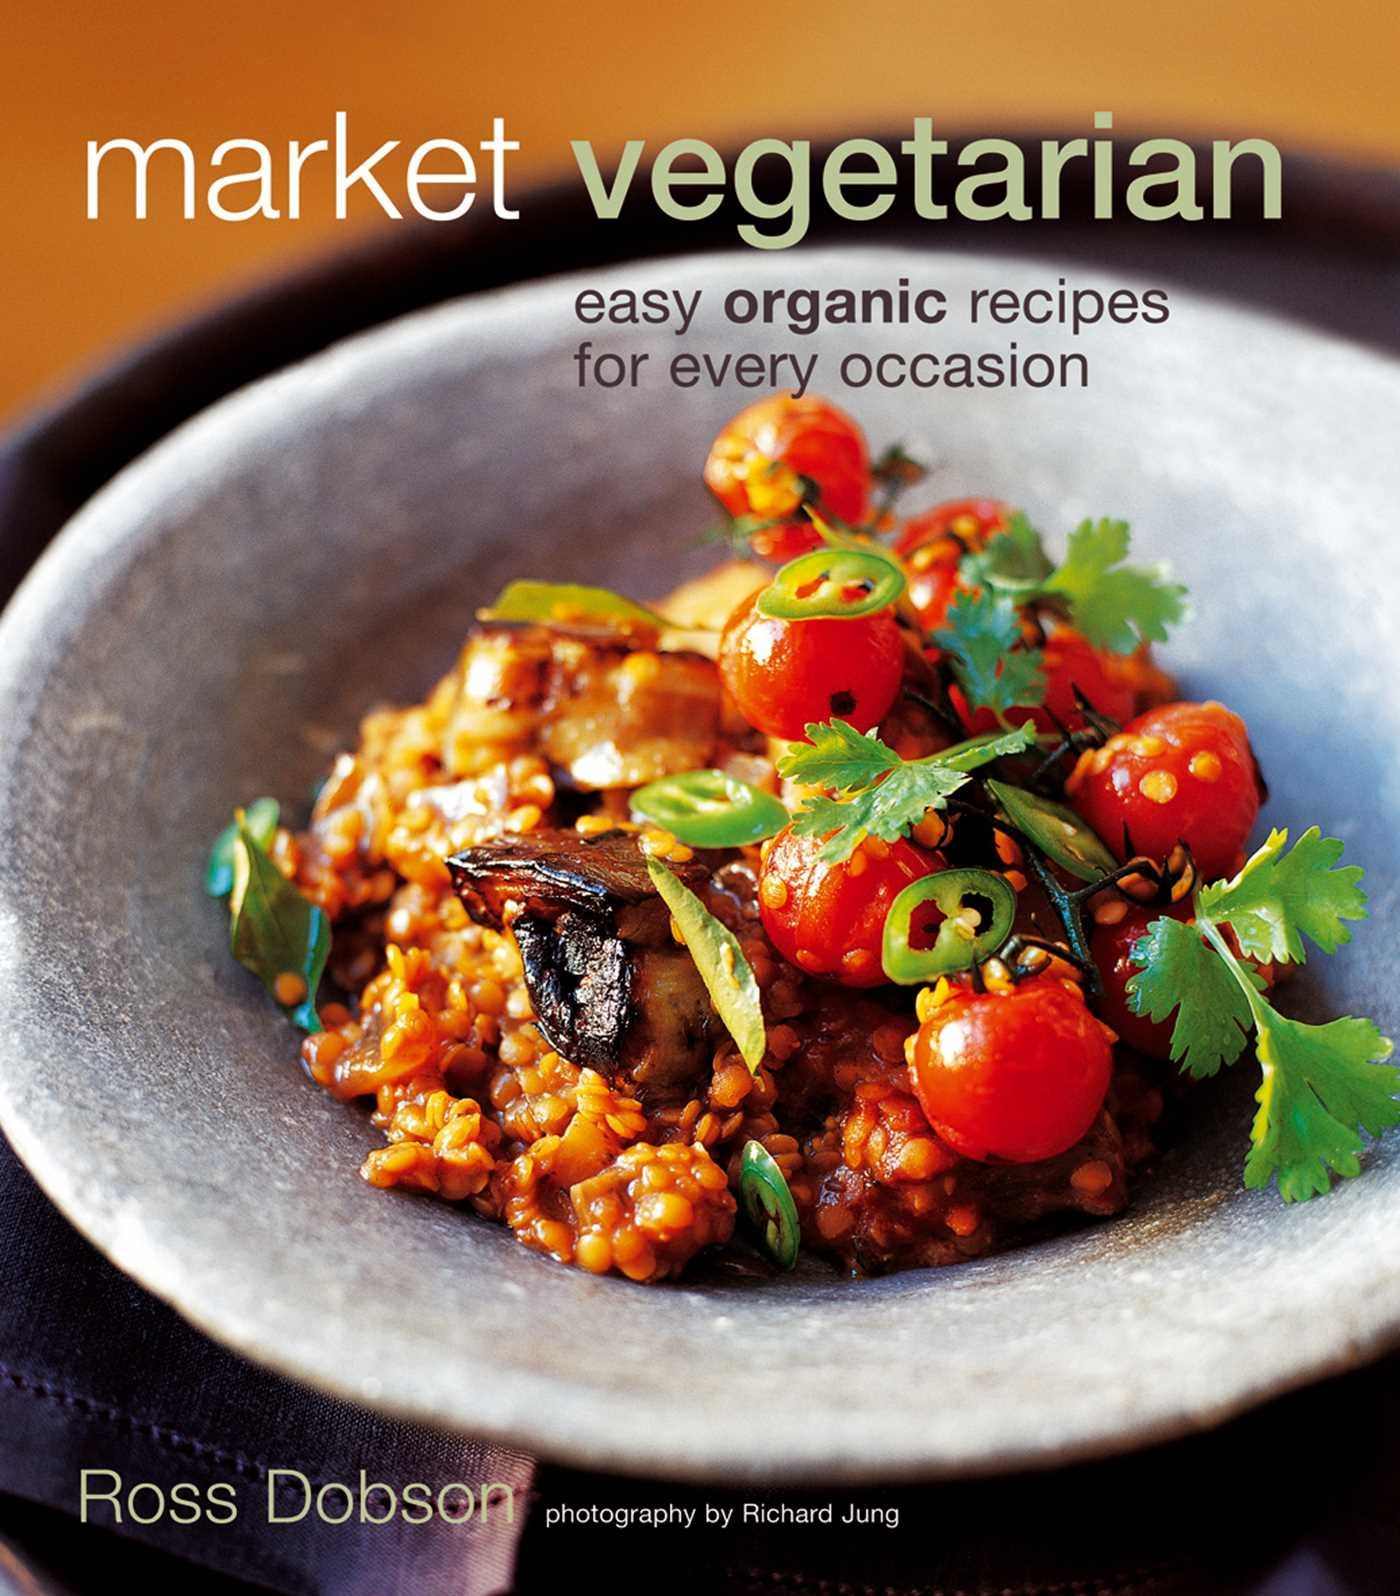 Market vegetarian ross dobson 0694055011403 amazon books forumfinder Images